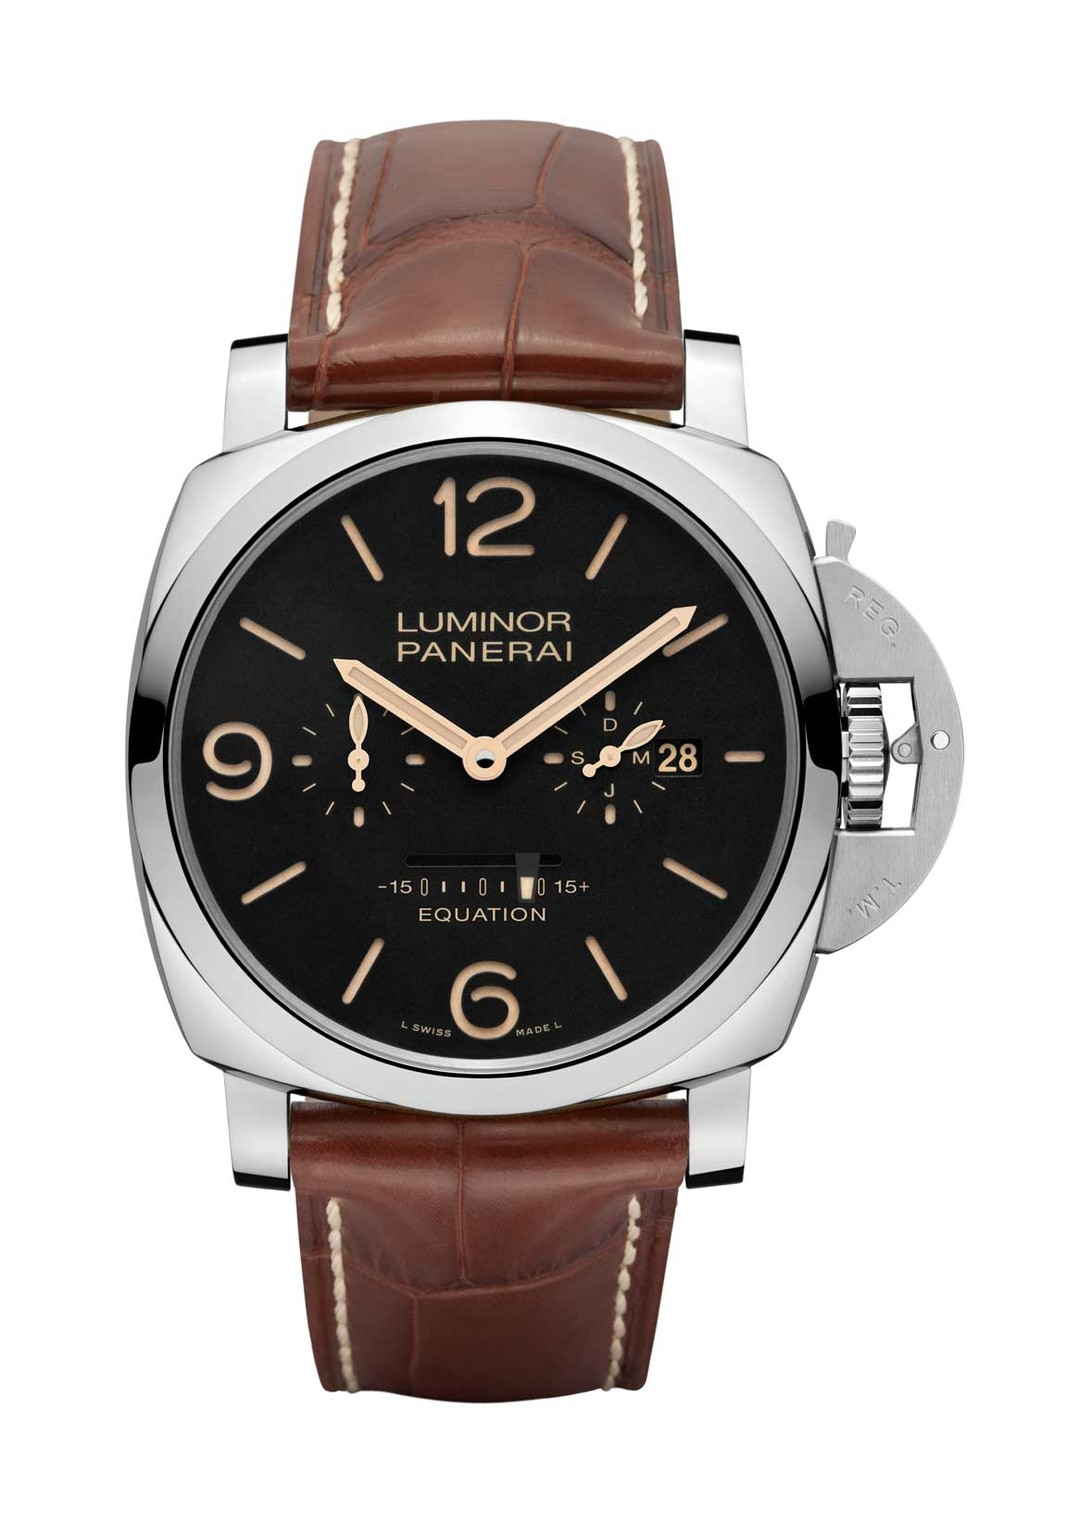 The Luminor, with its distinctive bridge device to lock the crown, is slightly smaller at 47mm and houses exactly the same calibre as its older brother. Presented on a brown alligator strap, the Panerai Luminor 1950 is a limited edition of just 100 watche